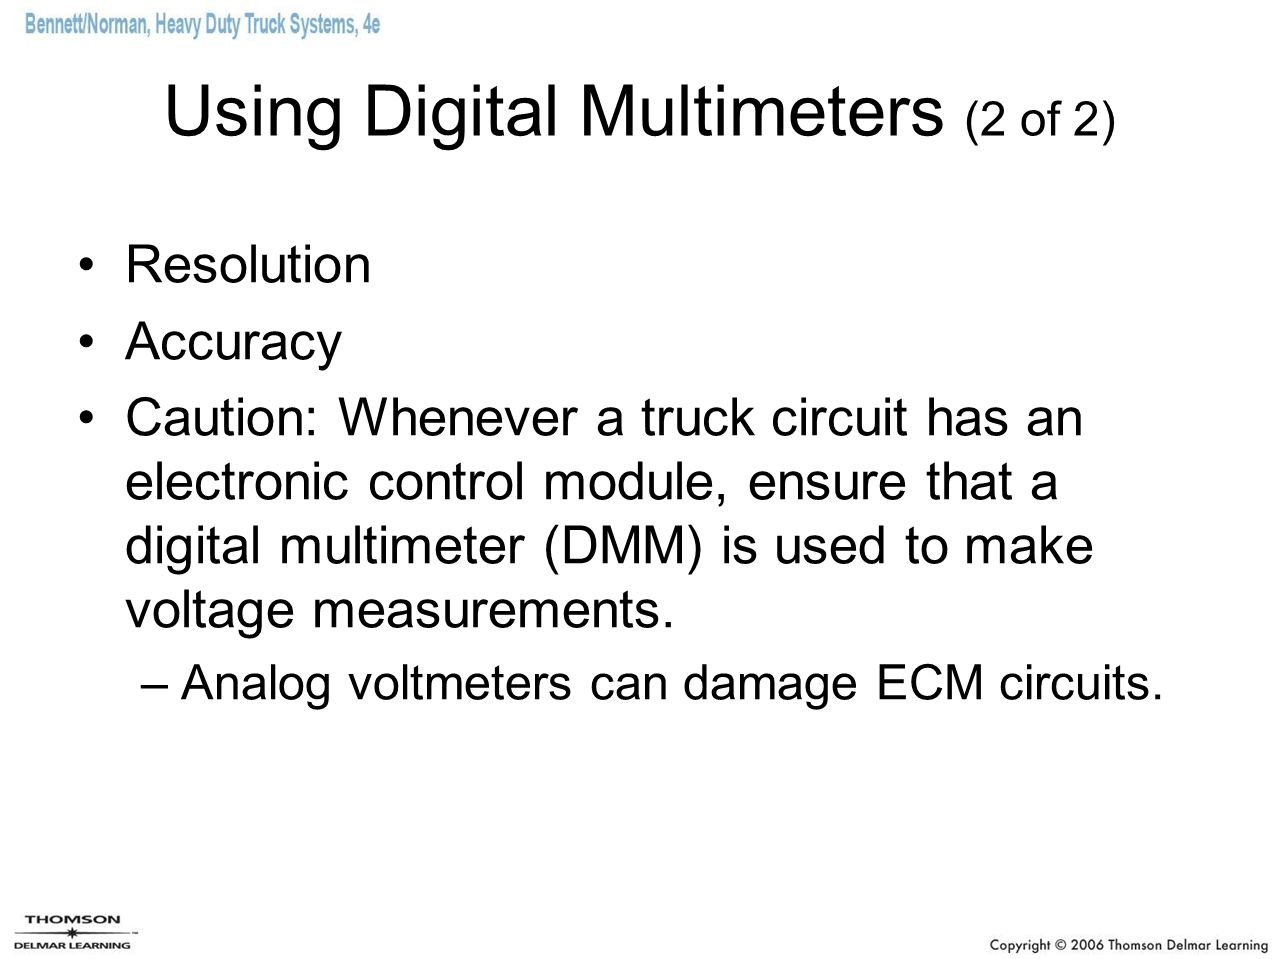 Using Digital Multimeters (2 of 2)